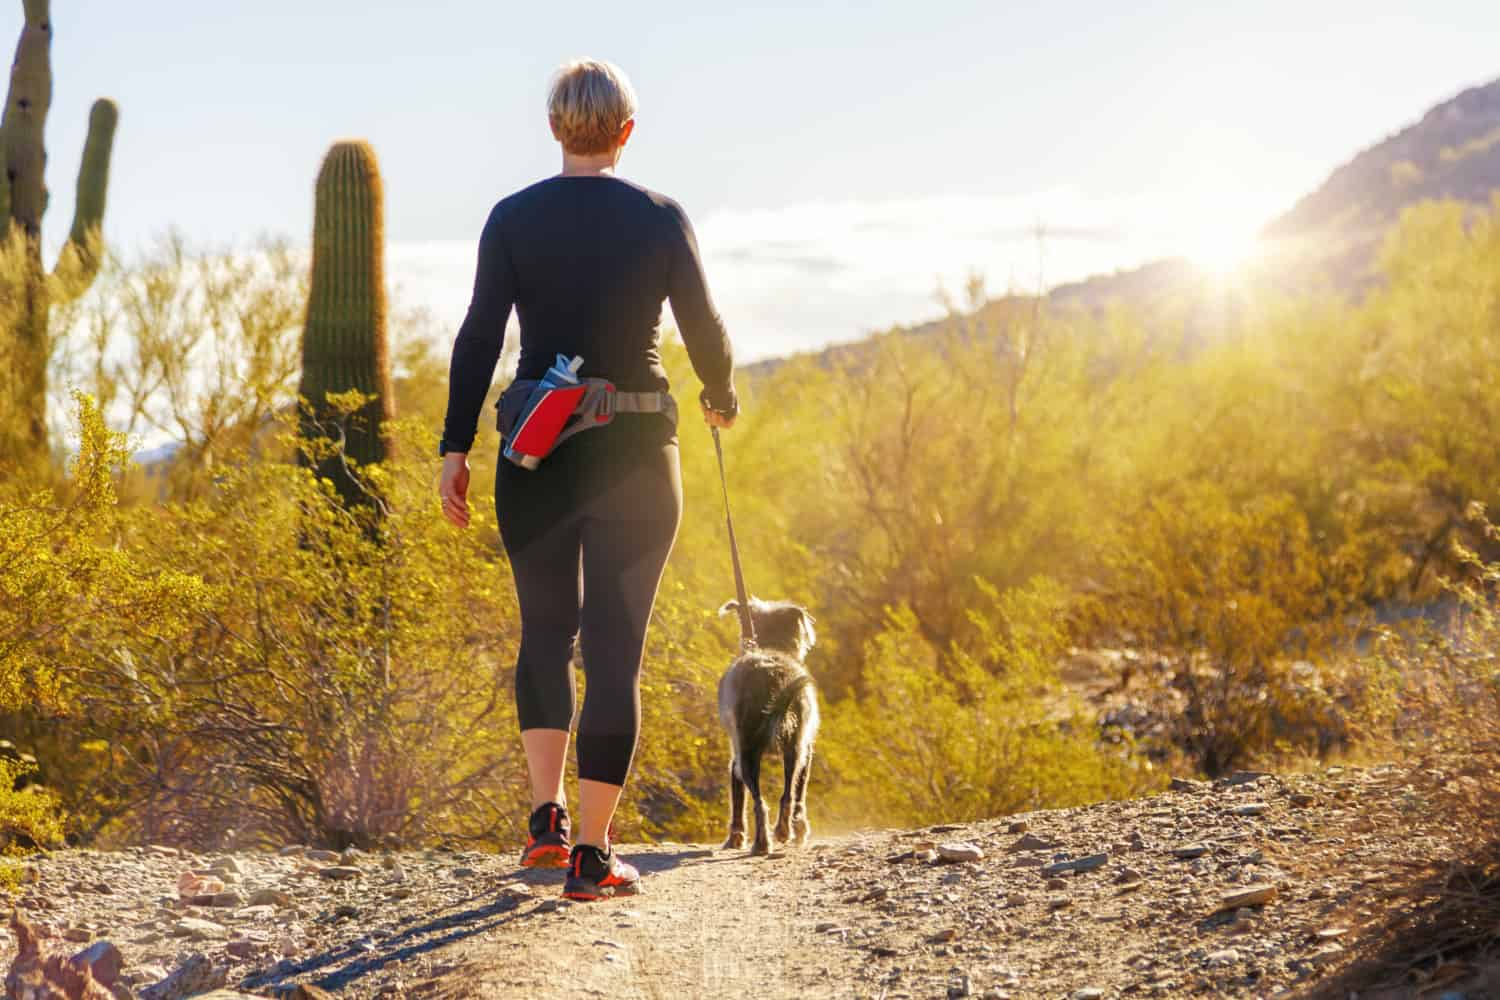 A woman walking with a dog in Saguaro National Park in Arizona